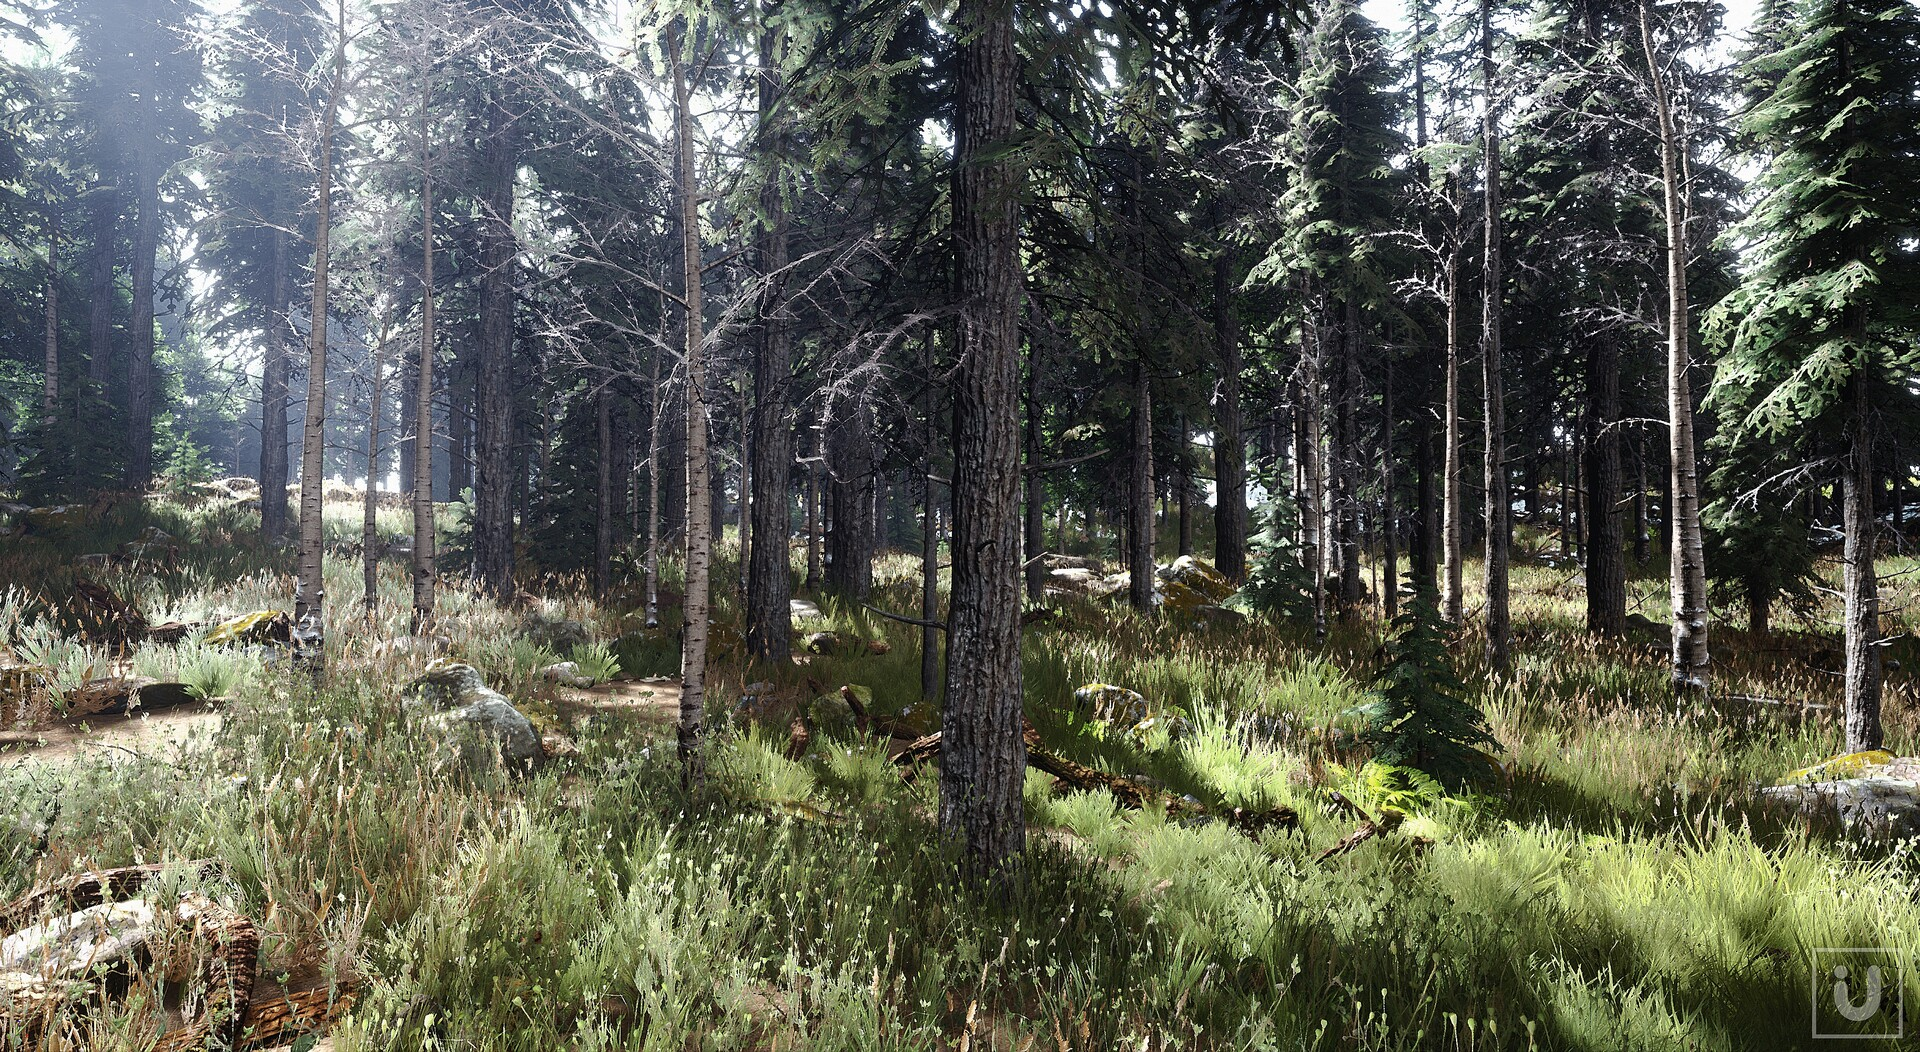 ArtStation - Unreal Engine - The Forest - Volumetric Fog and